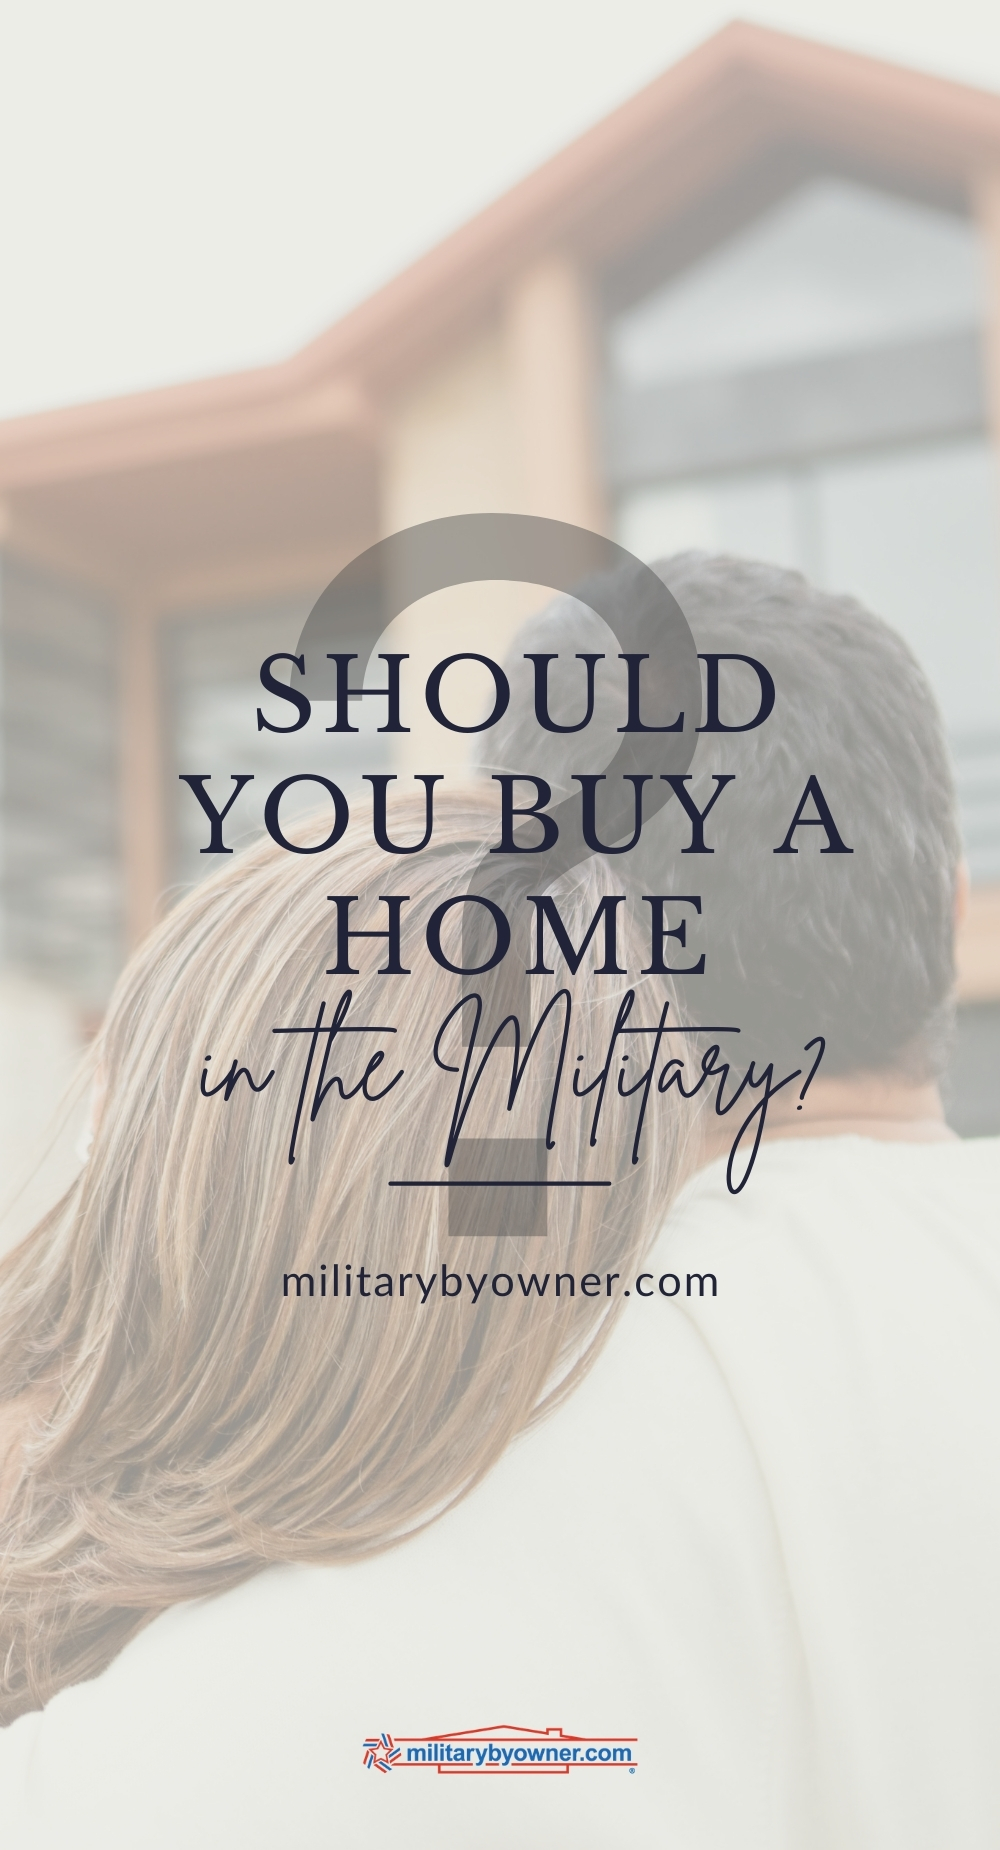 Should You Buy a Home in the Military?